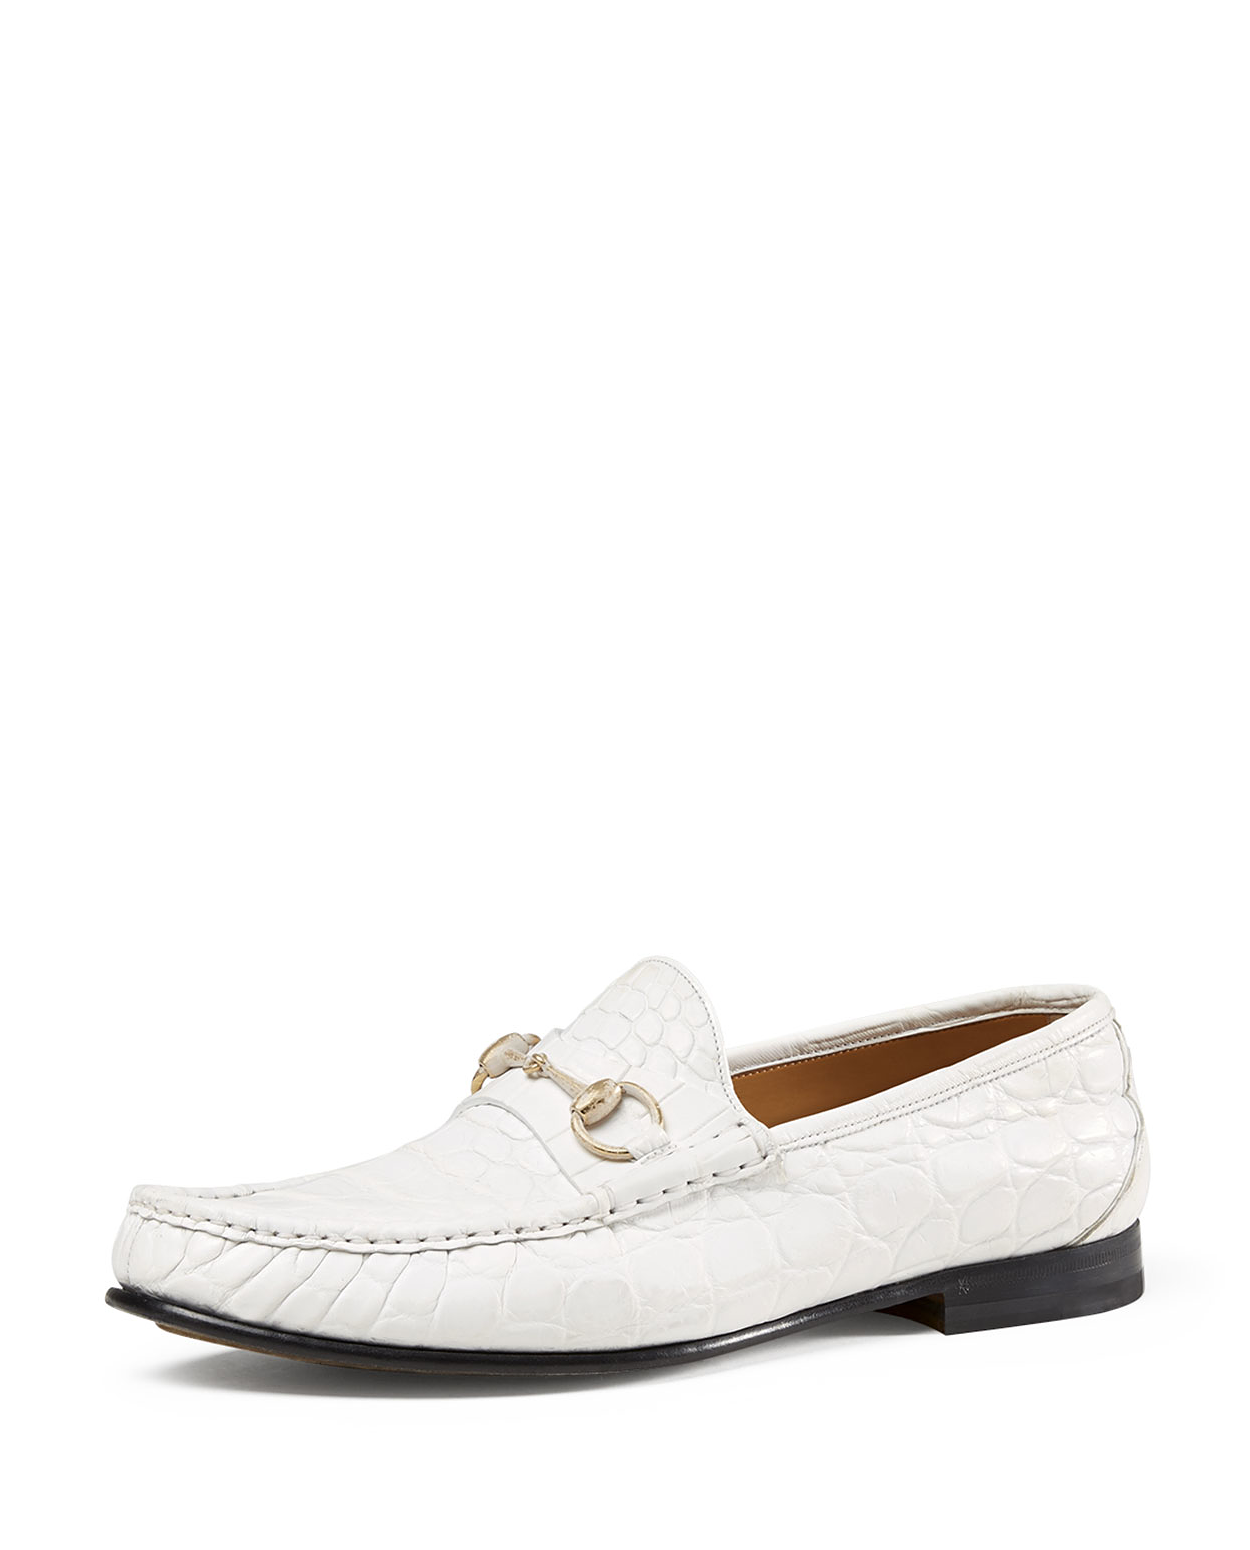 c9996b789 GUCCI Men's Crocodile Horsebit Loafer, White - was $2400.0, now $1200.0  (50% Off). Picked by mickster @ Bergdorf